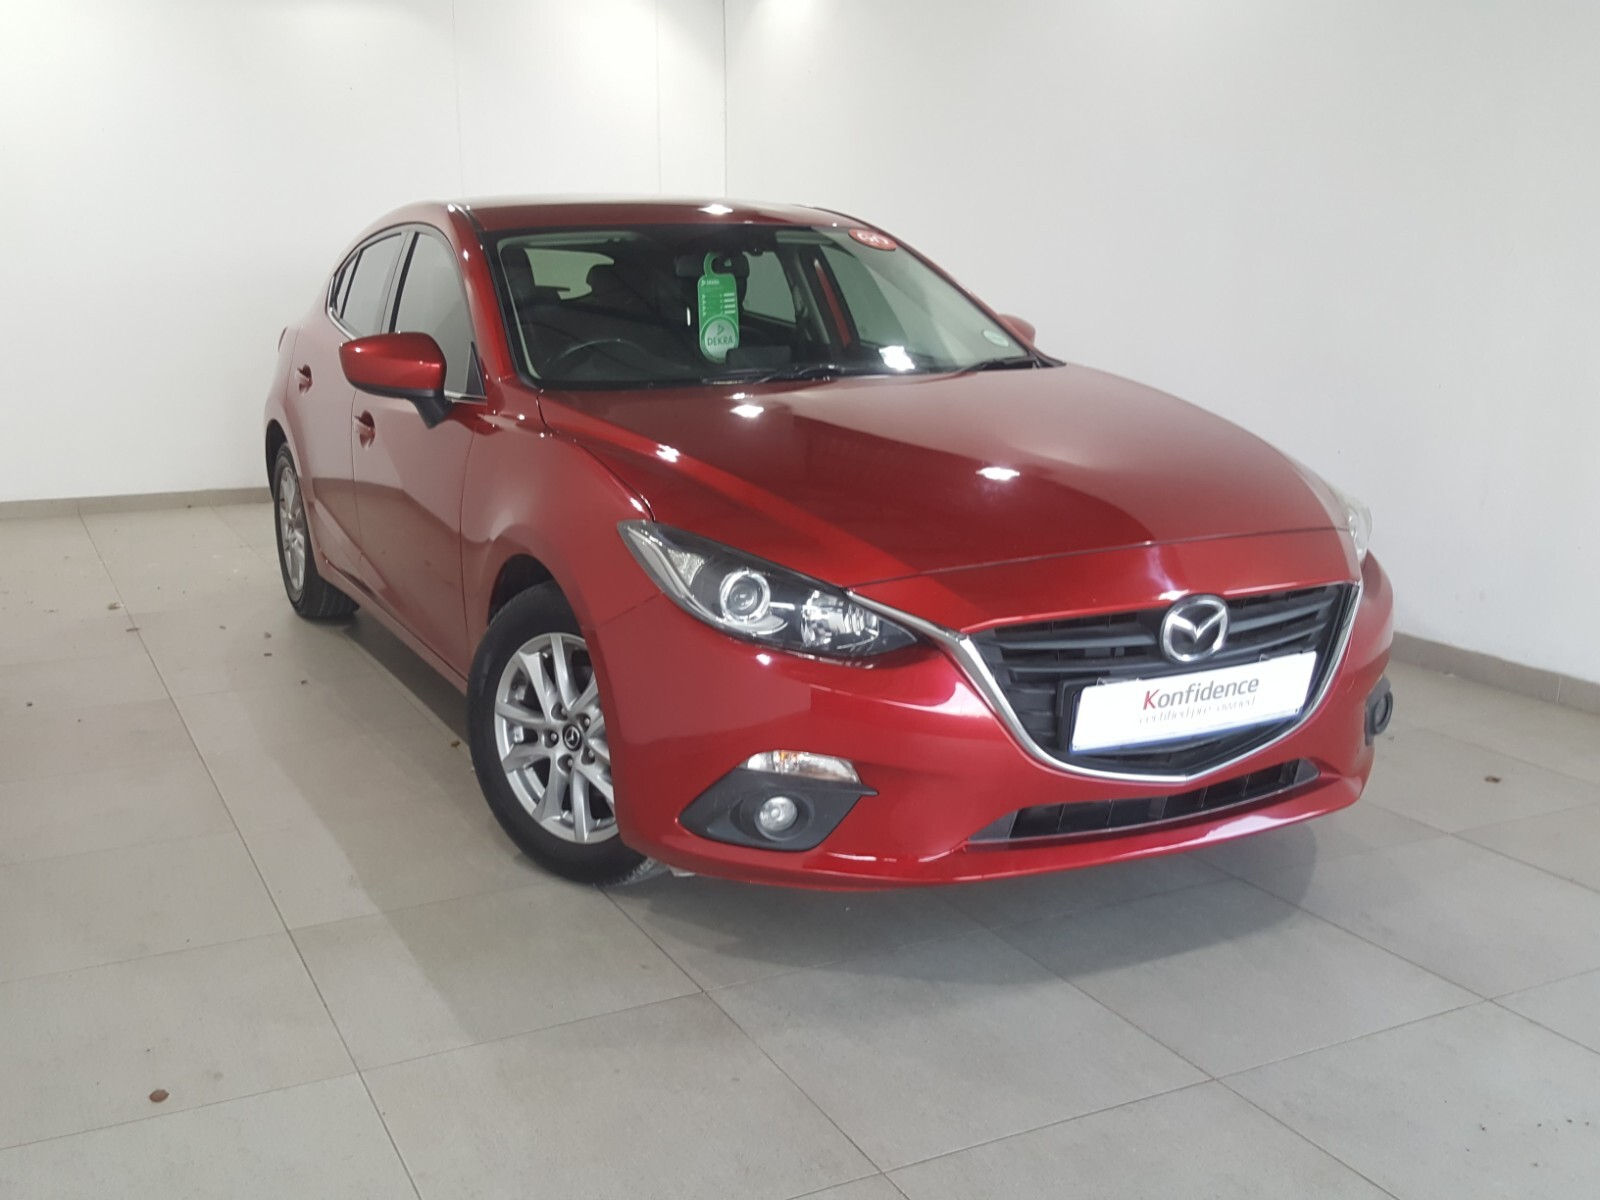 MAZDA 1.6 DYNAMIC 5DR A/T Roodepoort 0327025